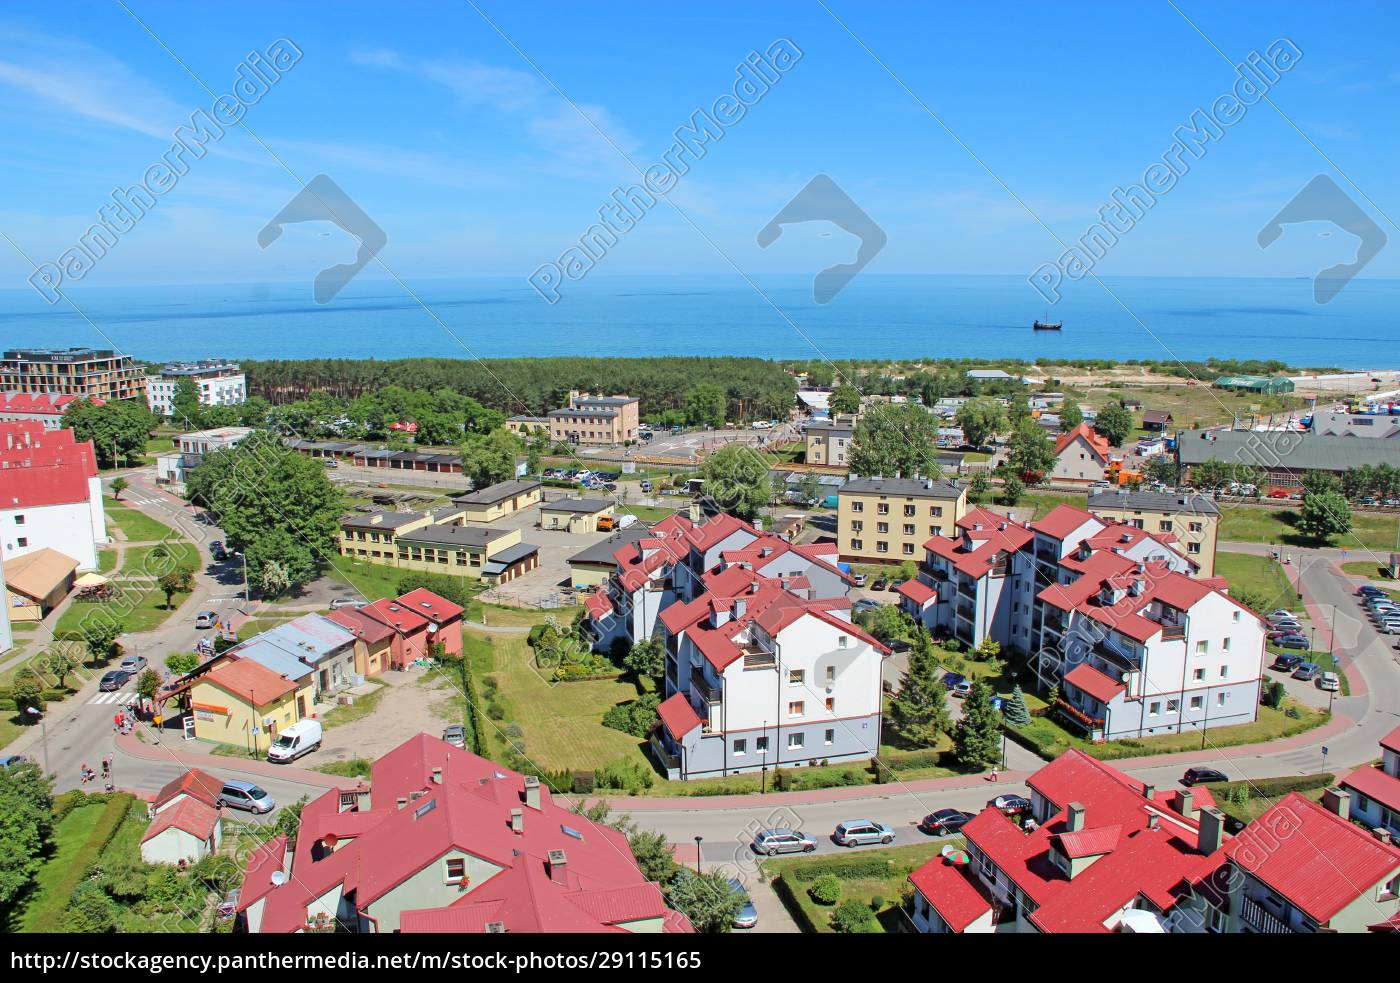 cityscape, of, wladyslawowo, town, from, above - 29115165